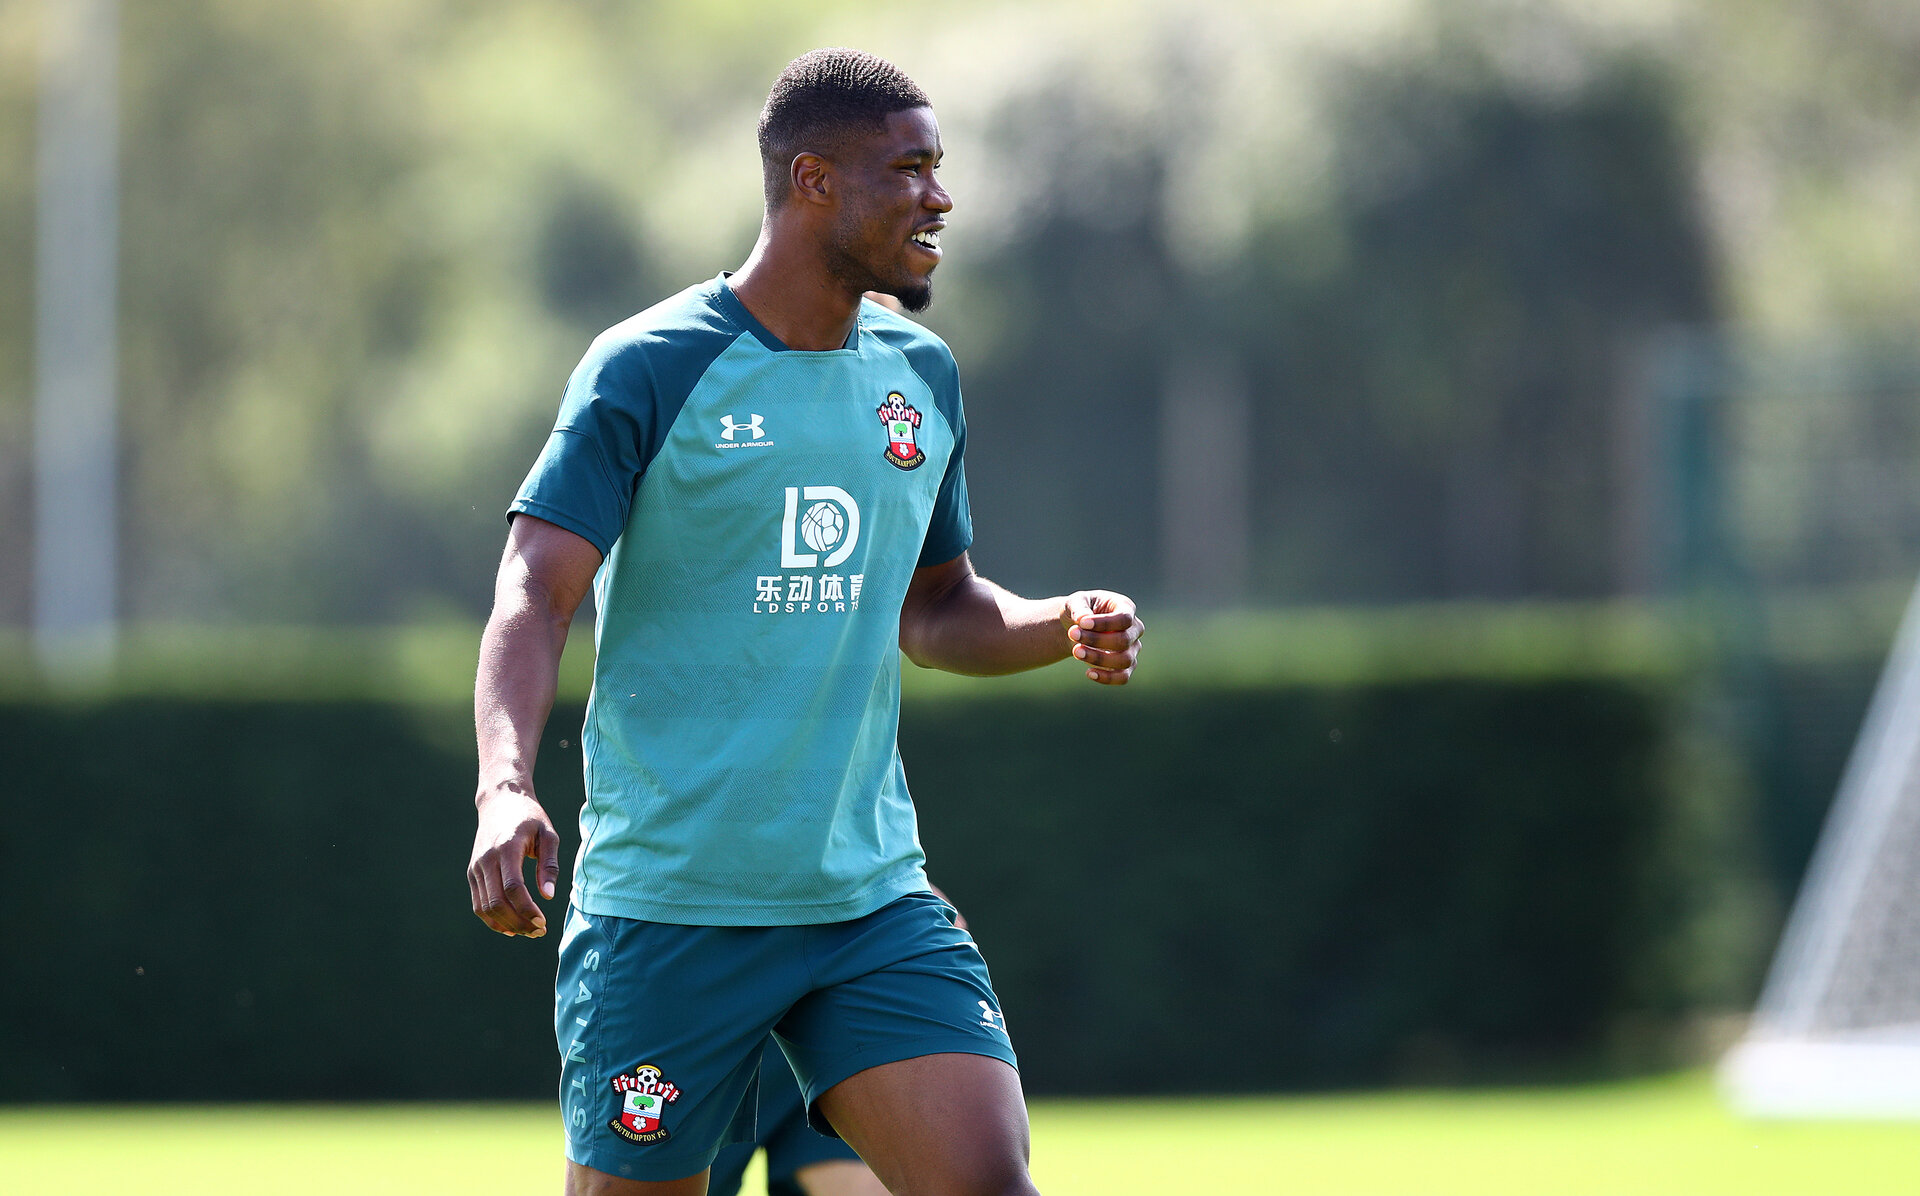 SOUTHAMPTON, ENGLAND - AUGUST 20: Kevin Danso during a Southampton FC training session at the Staplewood Campus on August 20, 2019 in Southampton, England. (Photo by Matt Watson/Southampton FC via Getty Images)